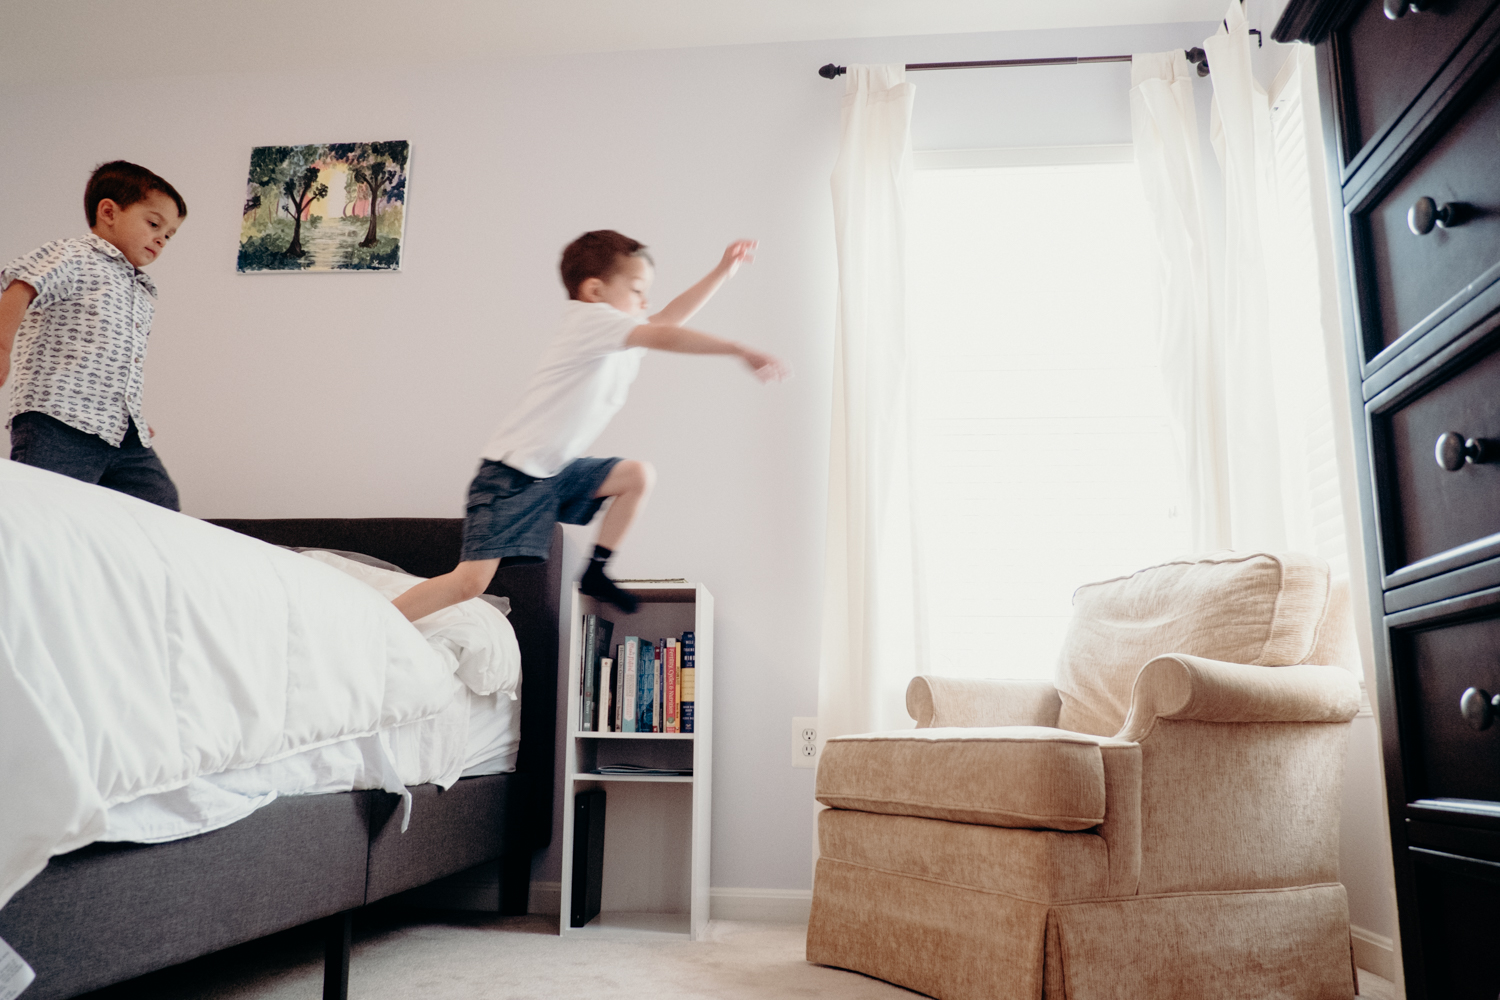 A little boy jumps off his parents bed onto a chair while his little brother watches.